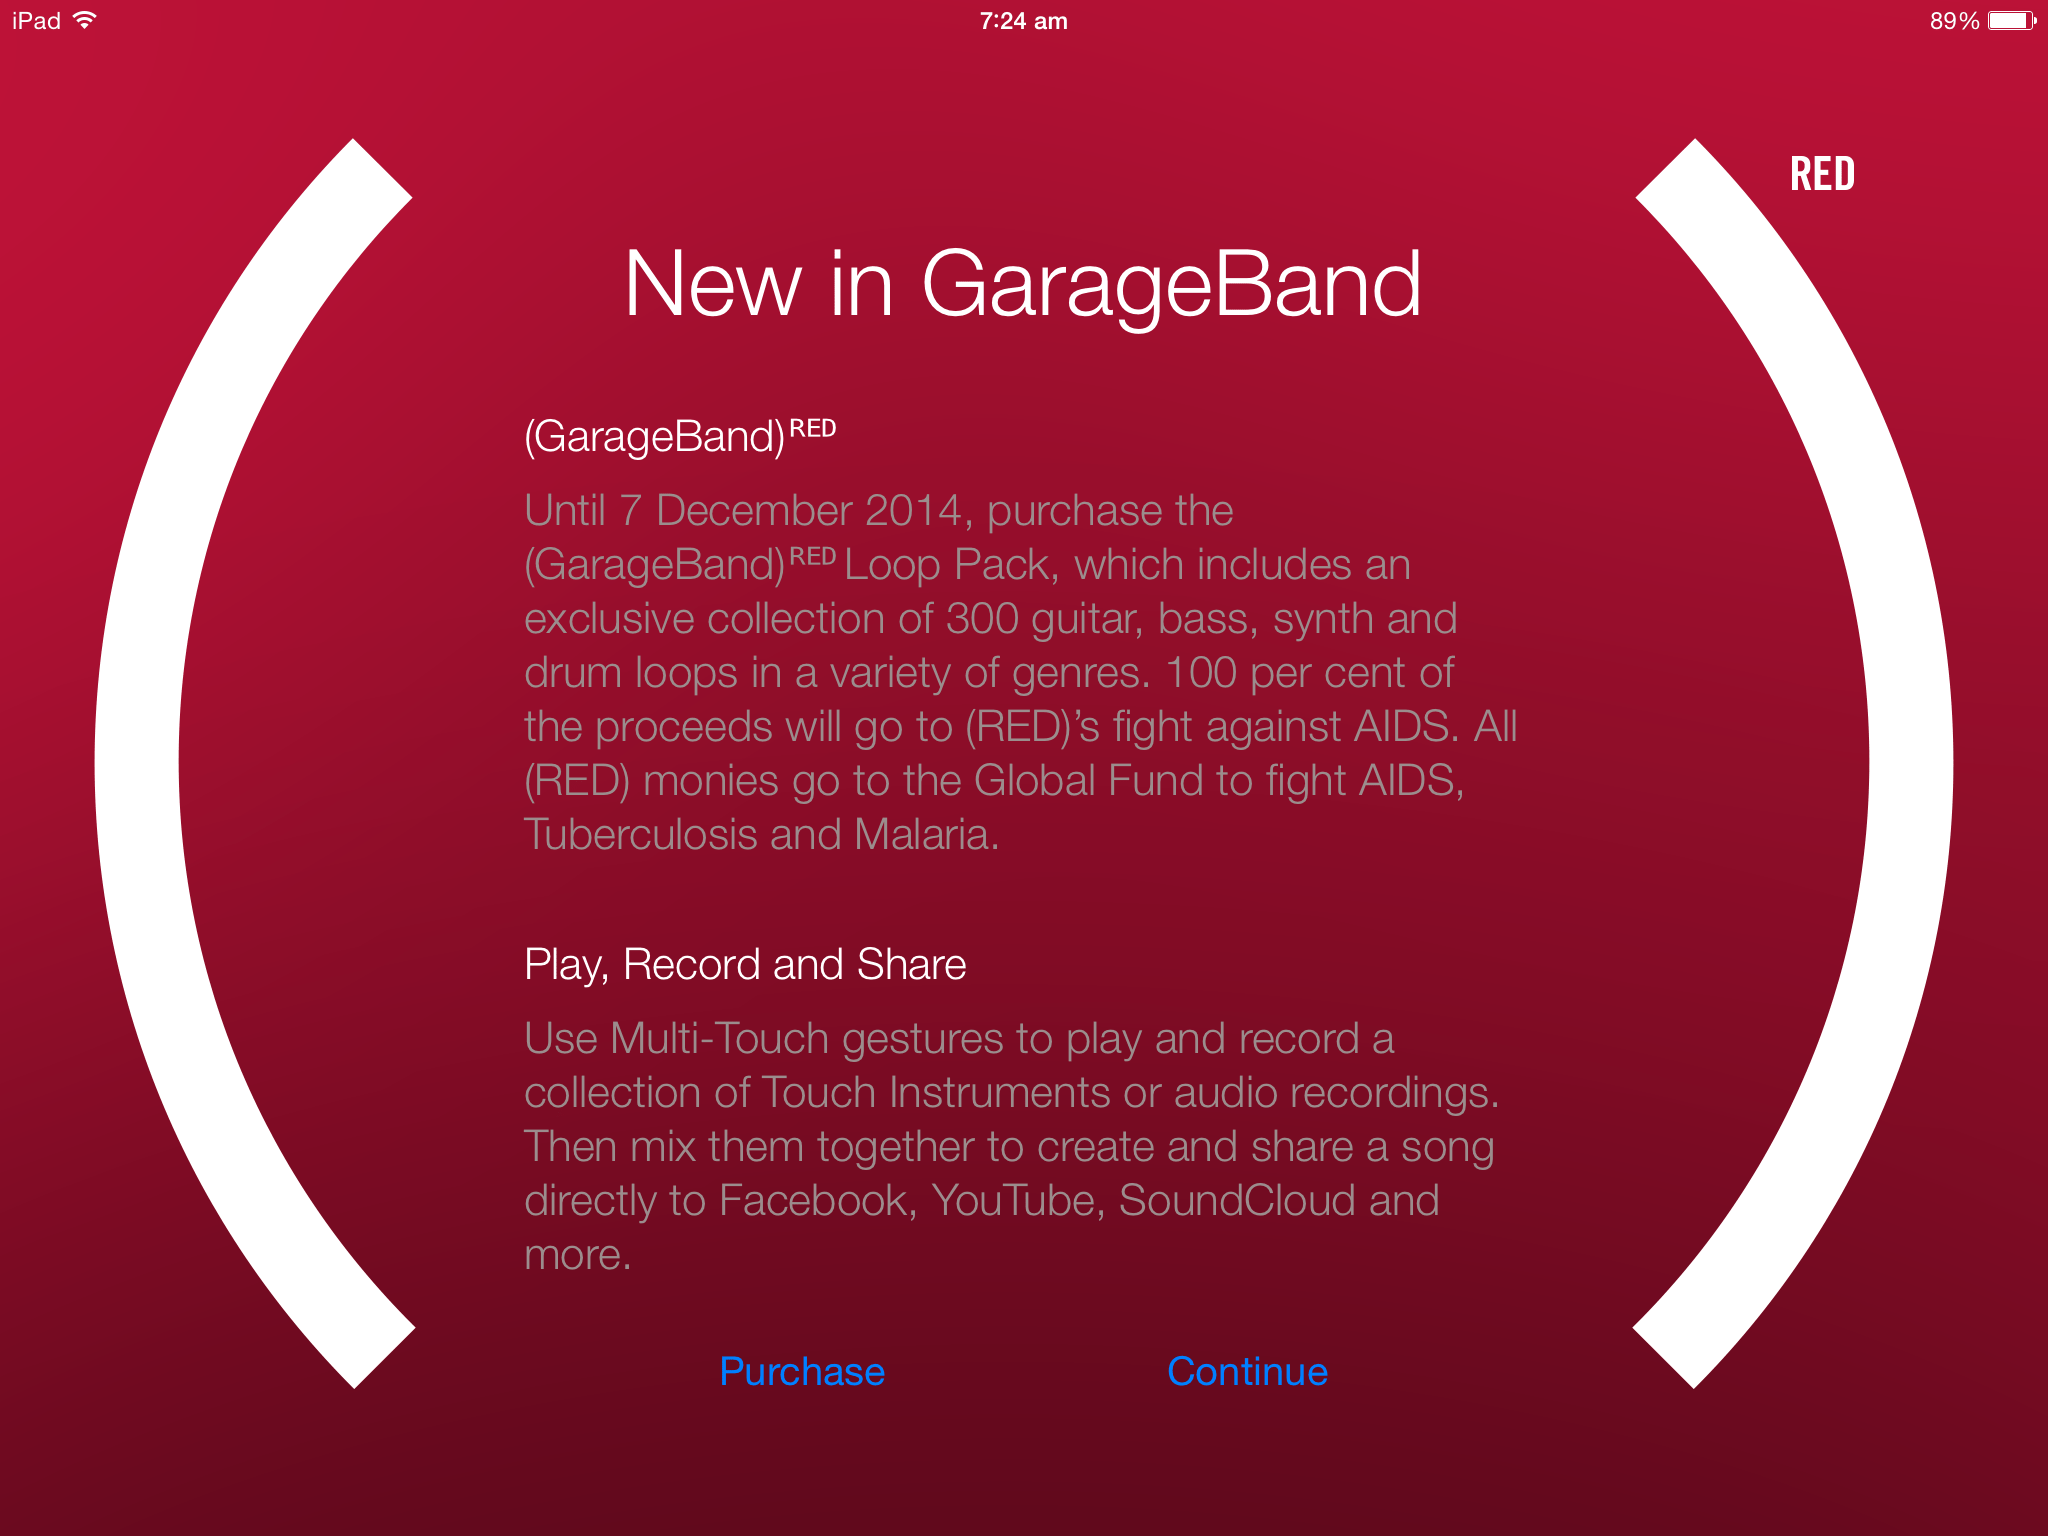 Fan Garageband Red Garageband Loops Iphone 6 App Surge All The Red Ios Deals